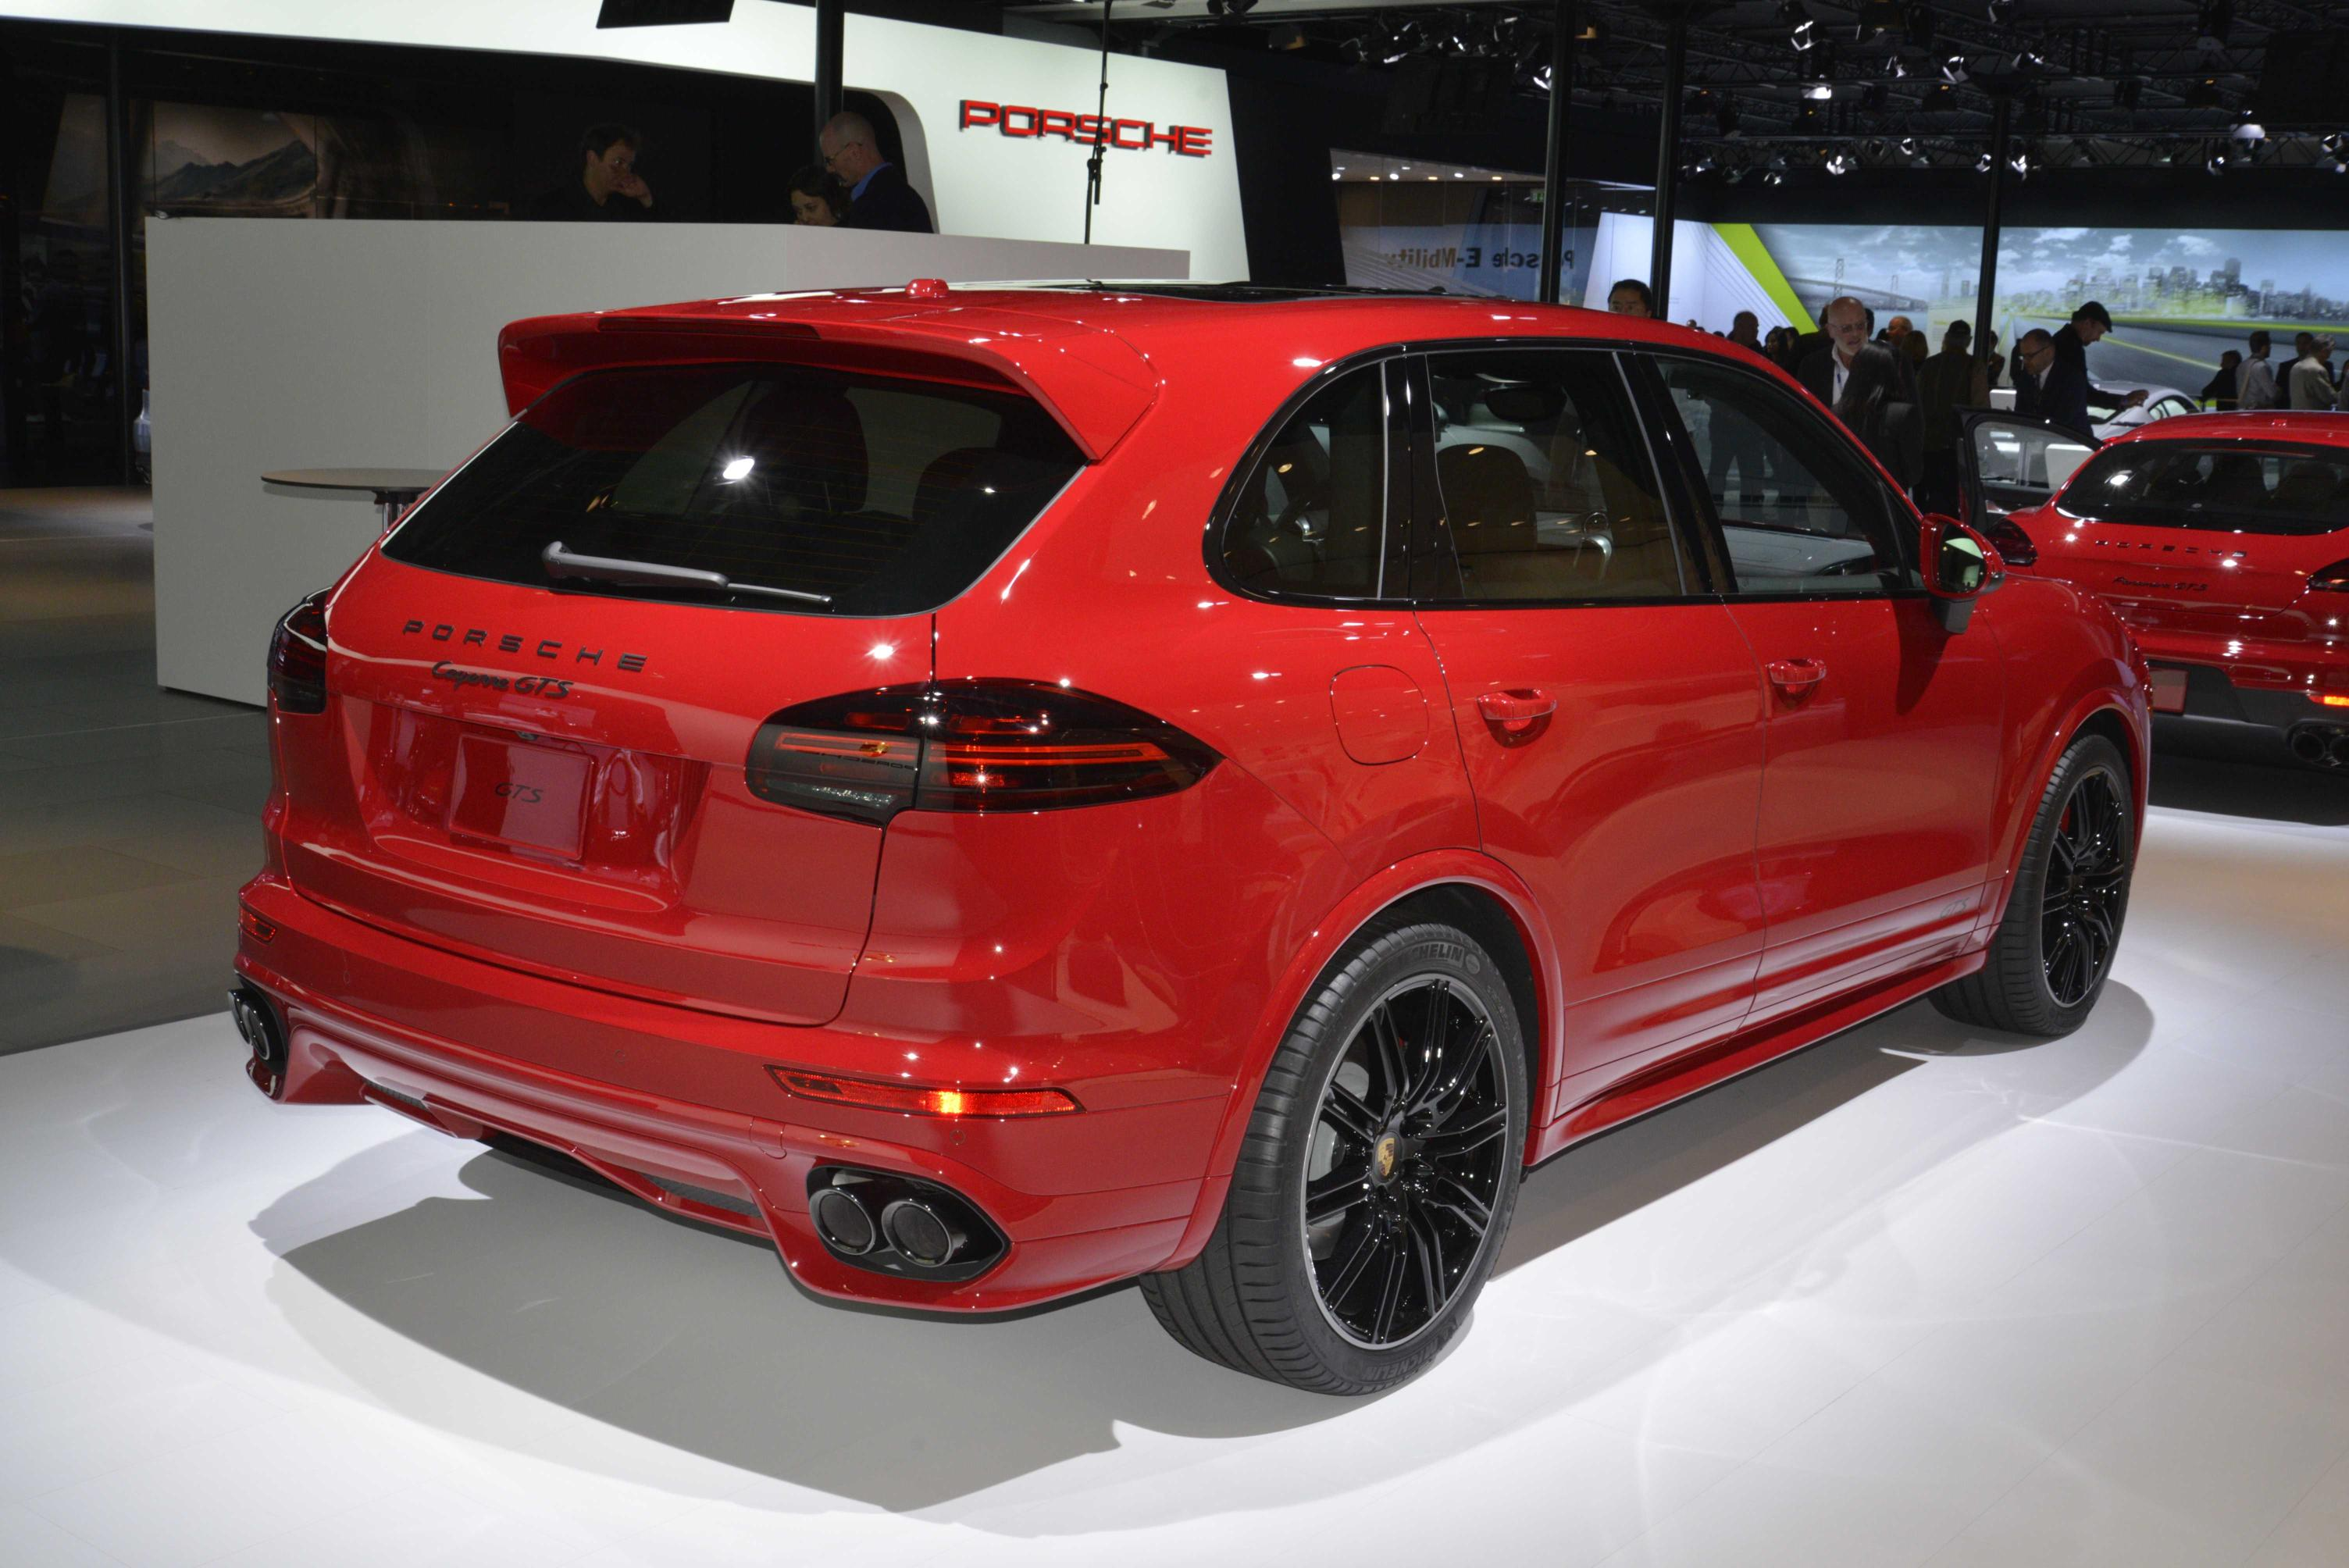 2016 Porsche Cayenne GTS. Photo credits: http://www.autoevolution.com/news/porsche-911-carrera-gts-and-2015-cayenne-gts-paint-la-in-carmine-red-live-photos-89123.html